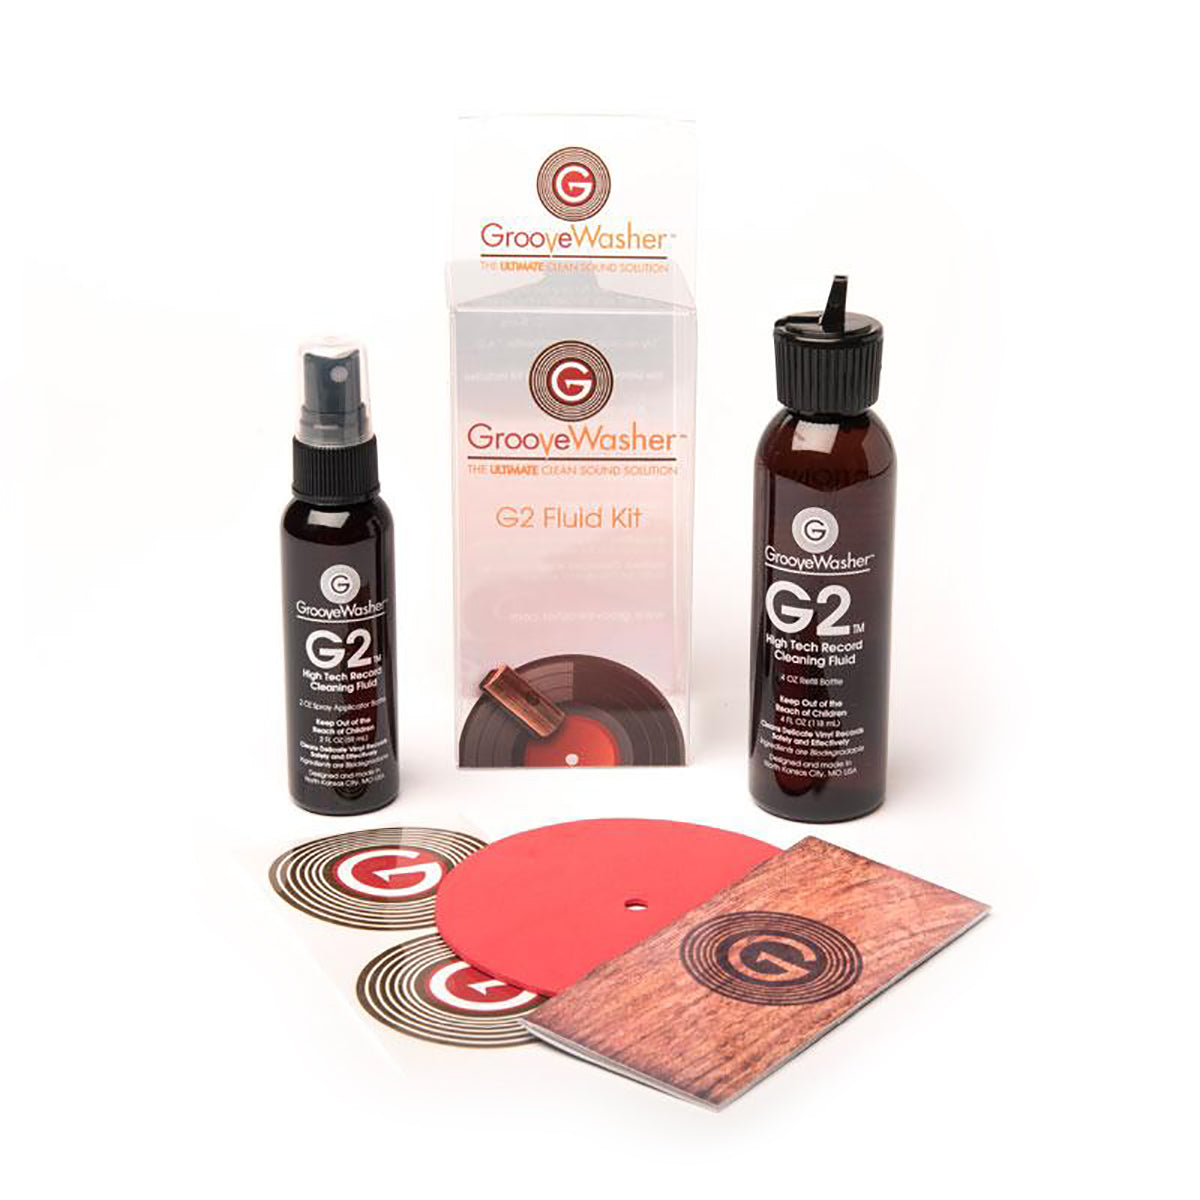 GrooveWasher: G2 Record Cleaning Fluid Kit - 2oz Spray & 4oz Refill